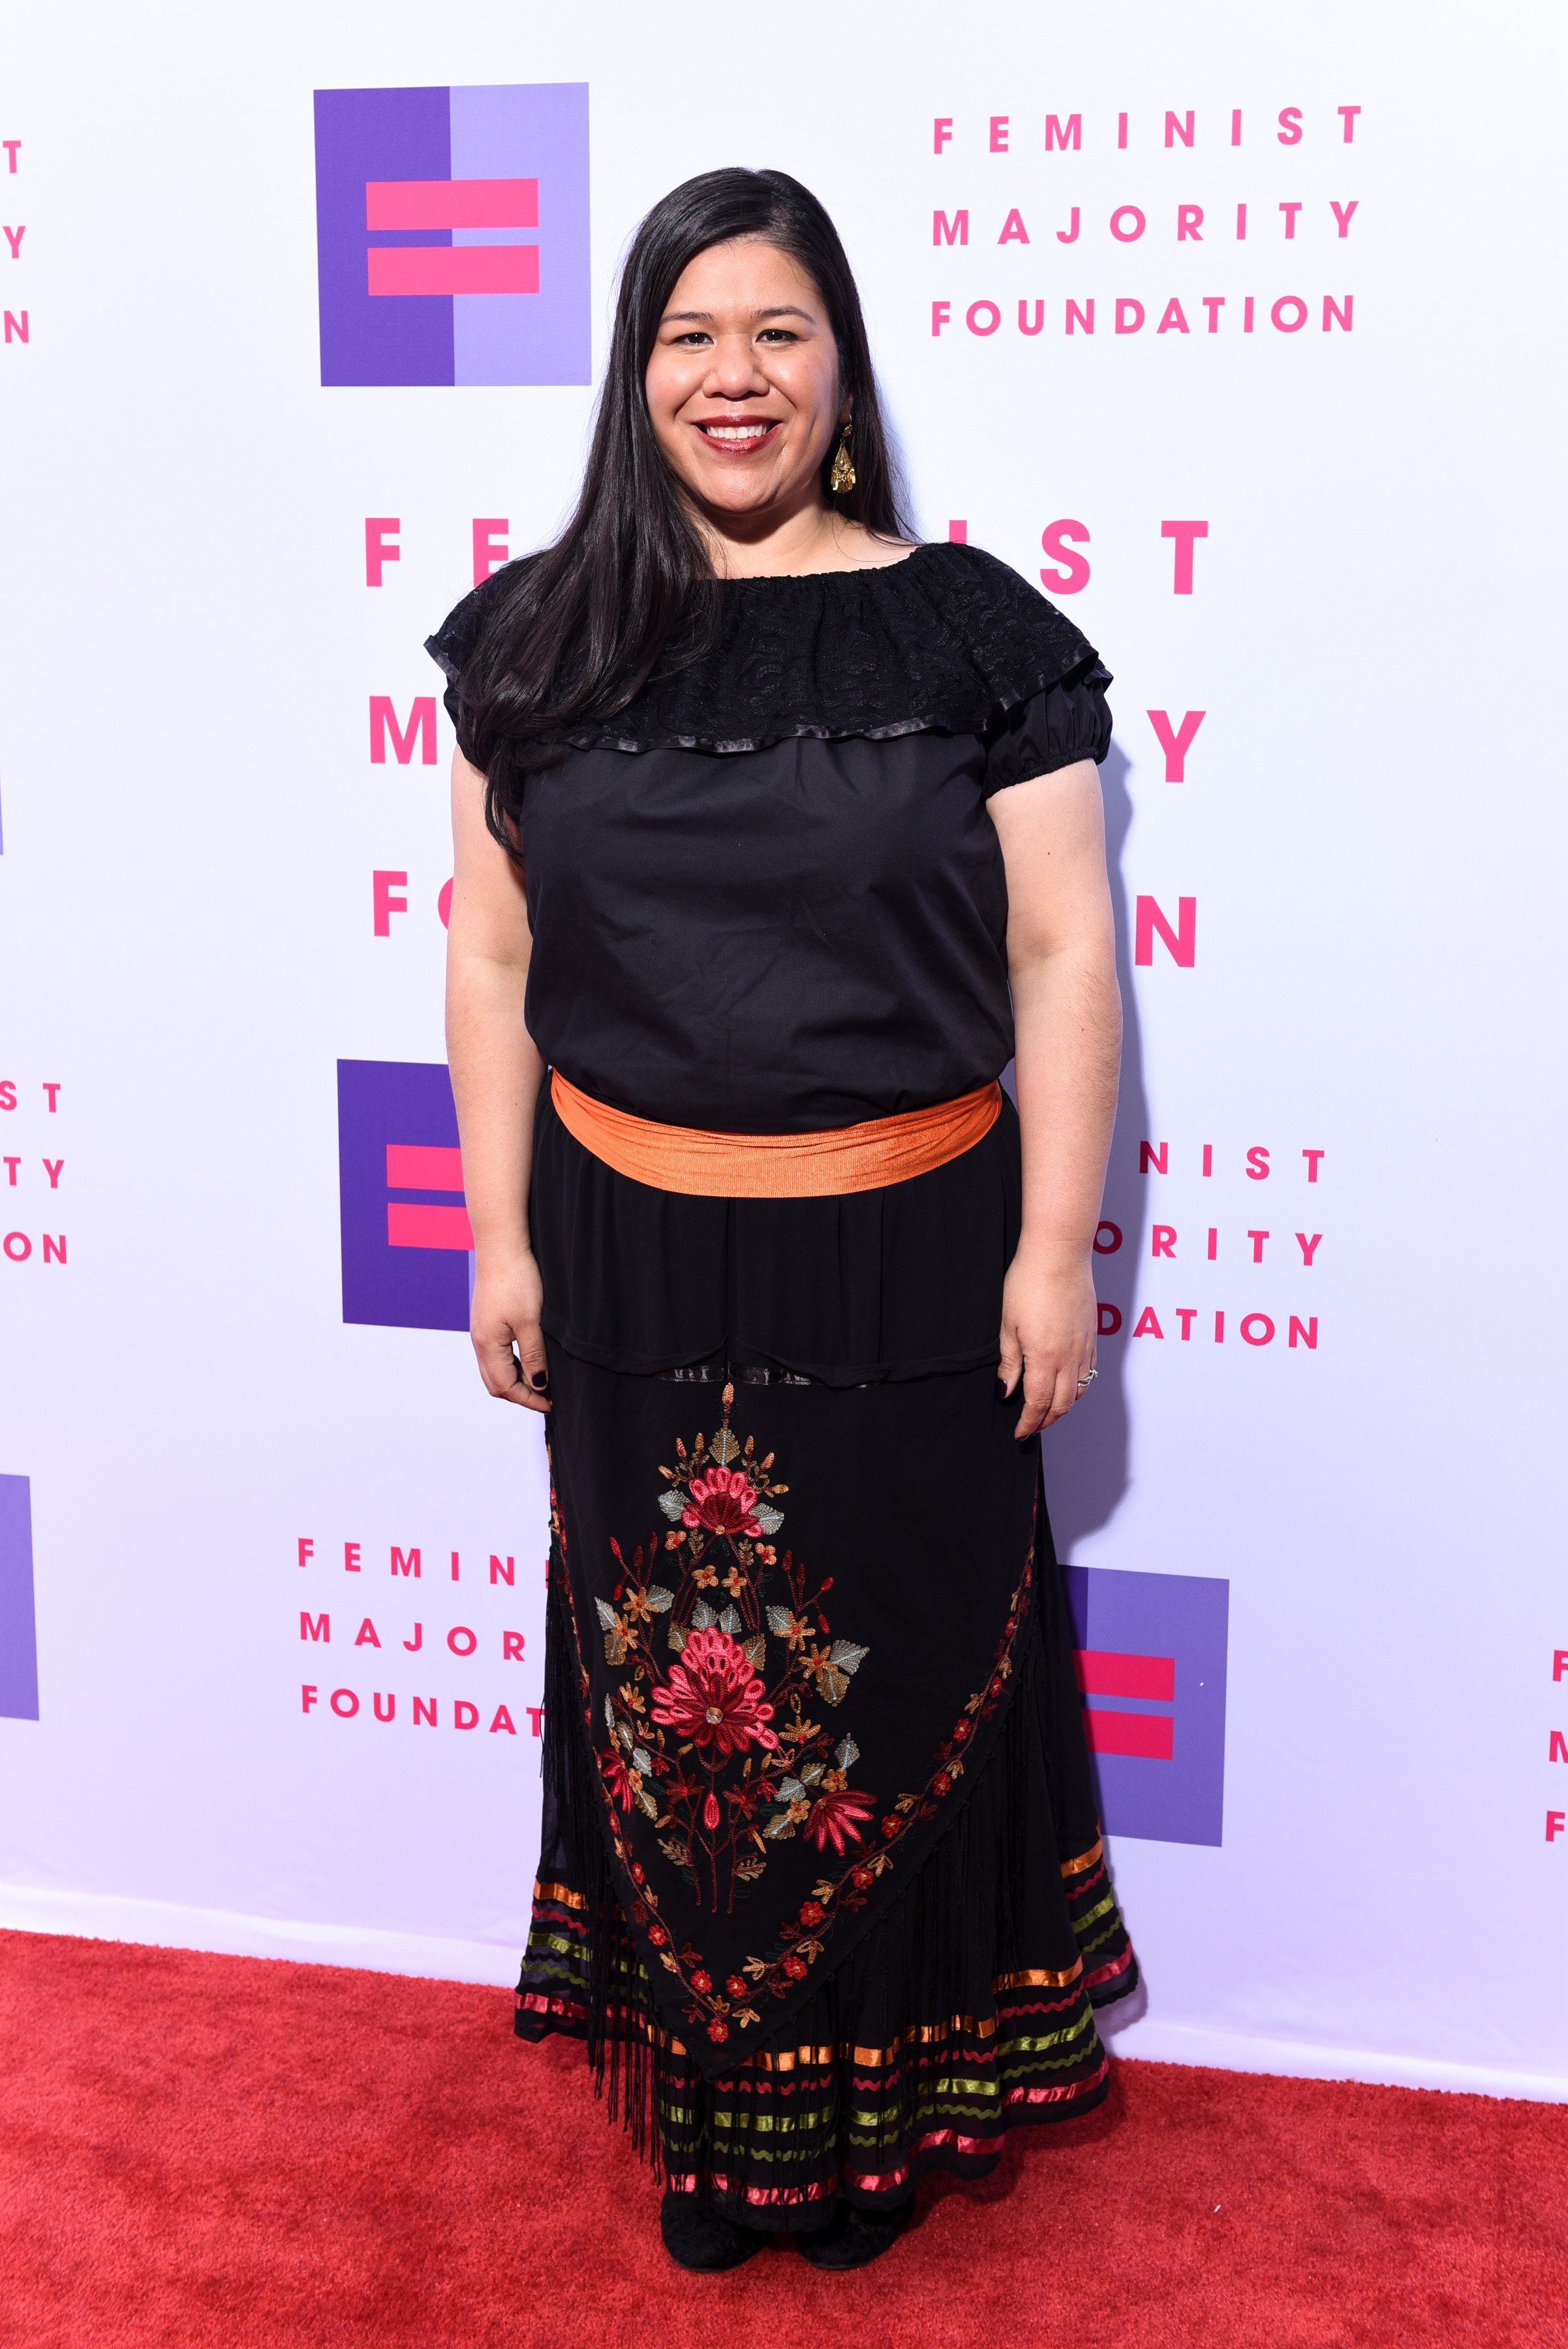 13th Annual Global Women's Rights Awards